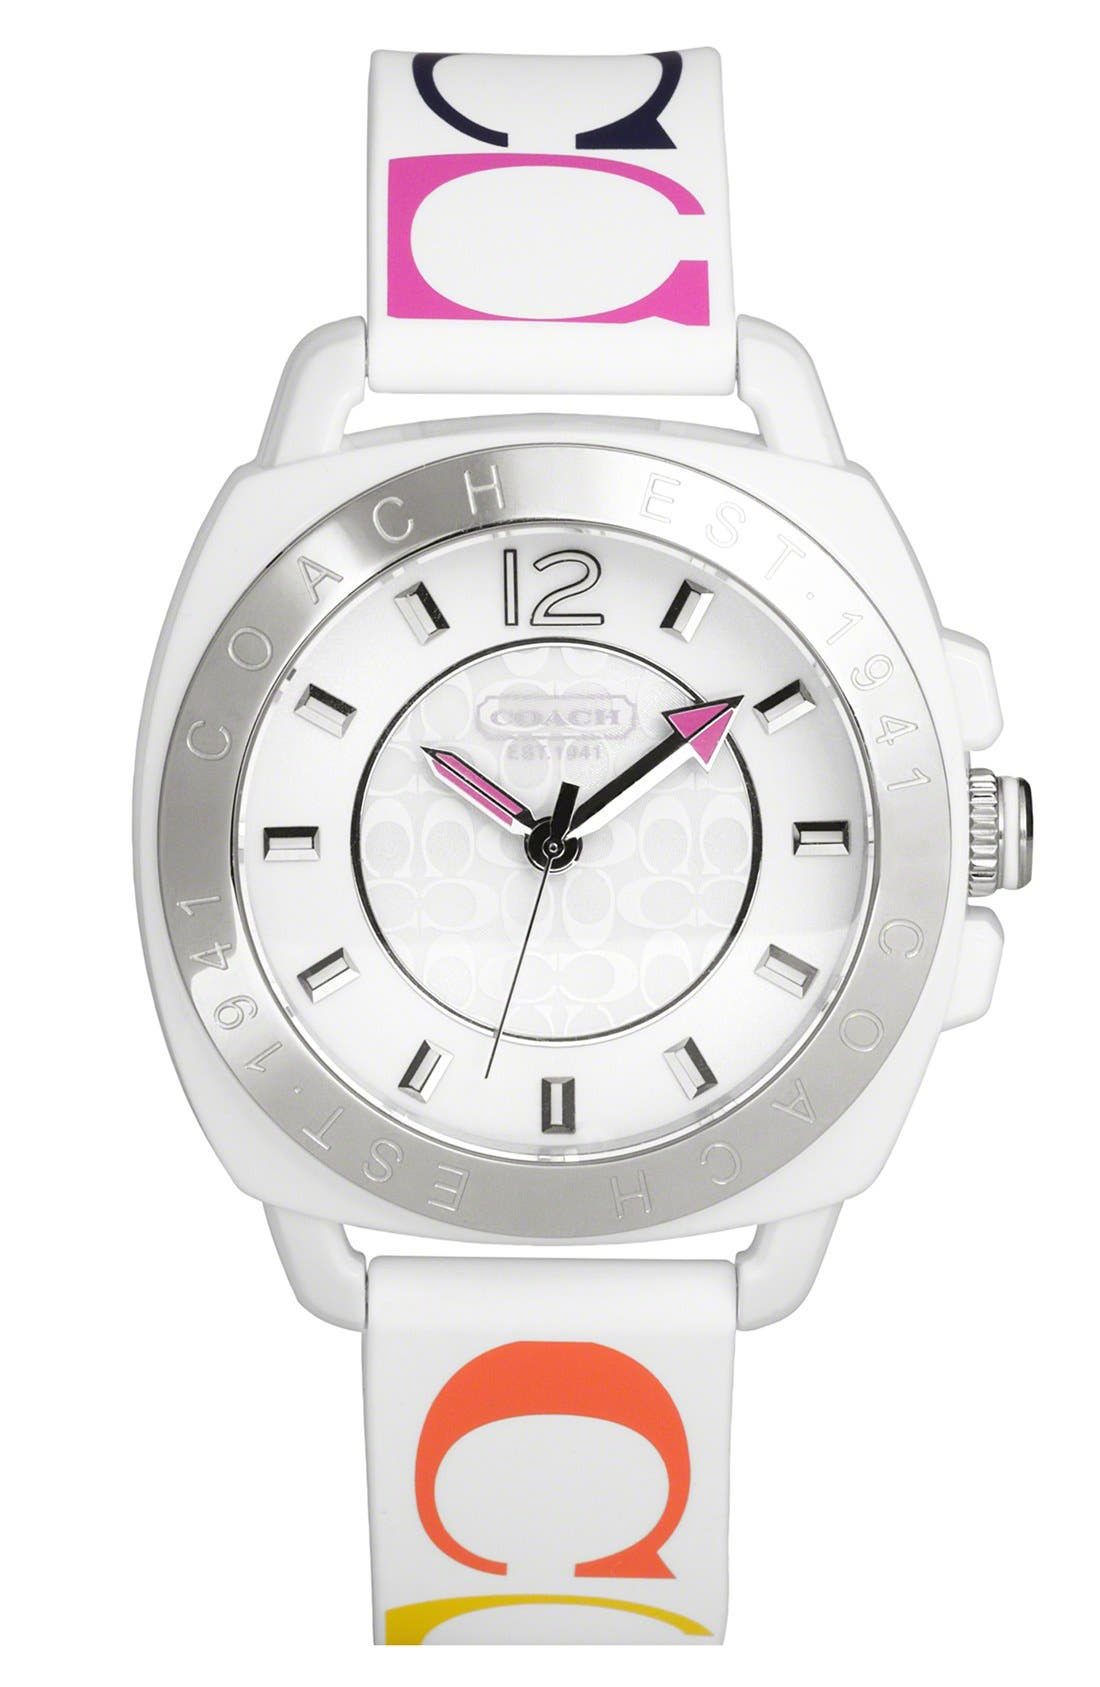 Main Image - COACH 'Boyfriend' Print Silicone Strap Watch, 40mm